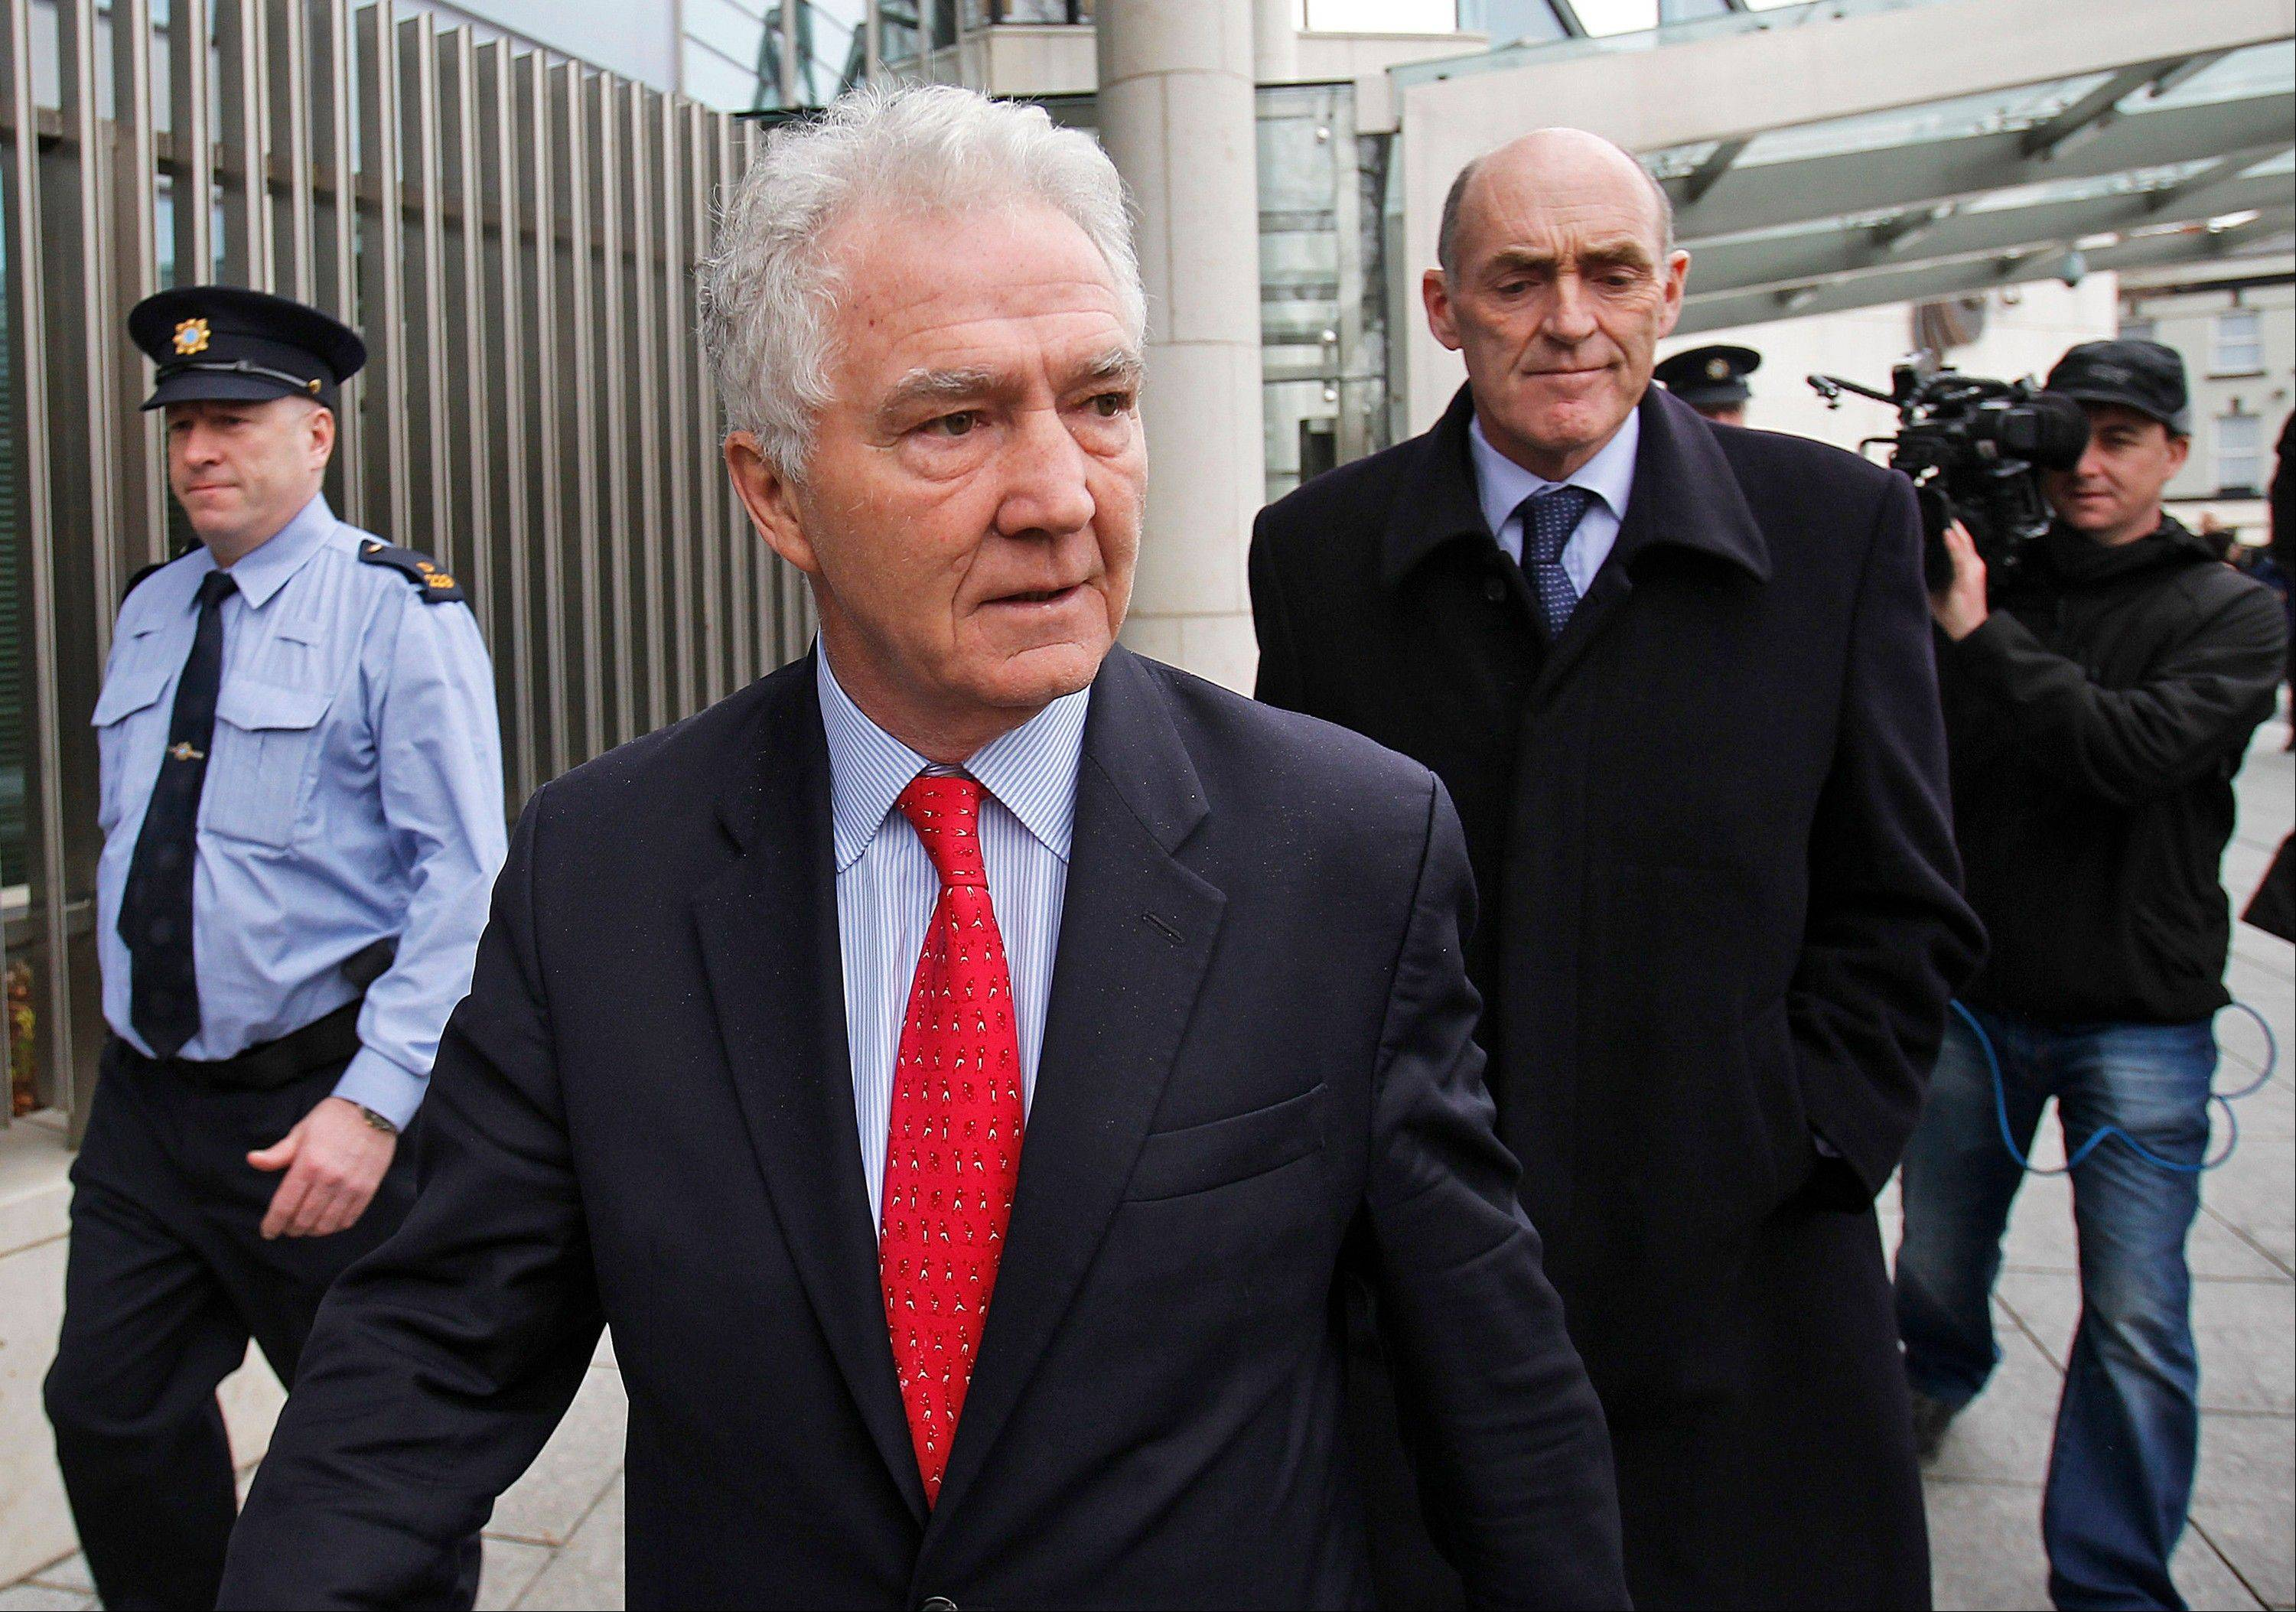 Former Anglo Irish Bank chief executive and chairman Sean FitzPatrick, front center, leaves District Court, in Dublin, Ireland, after being given bail appearing on charges of giving auditors false or misleading information on directors' loans over a five-year period, Friday Dec. 21, 2012. The 64-year old former chief of Ireland's collapsed Anglo Irish Bank, FitzPatrick, has been arraigned Friday on fraud charges of misleading auditors and shareholders alleging over $180 million in personal loans.